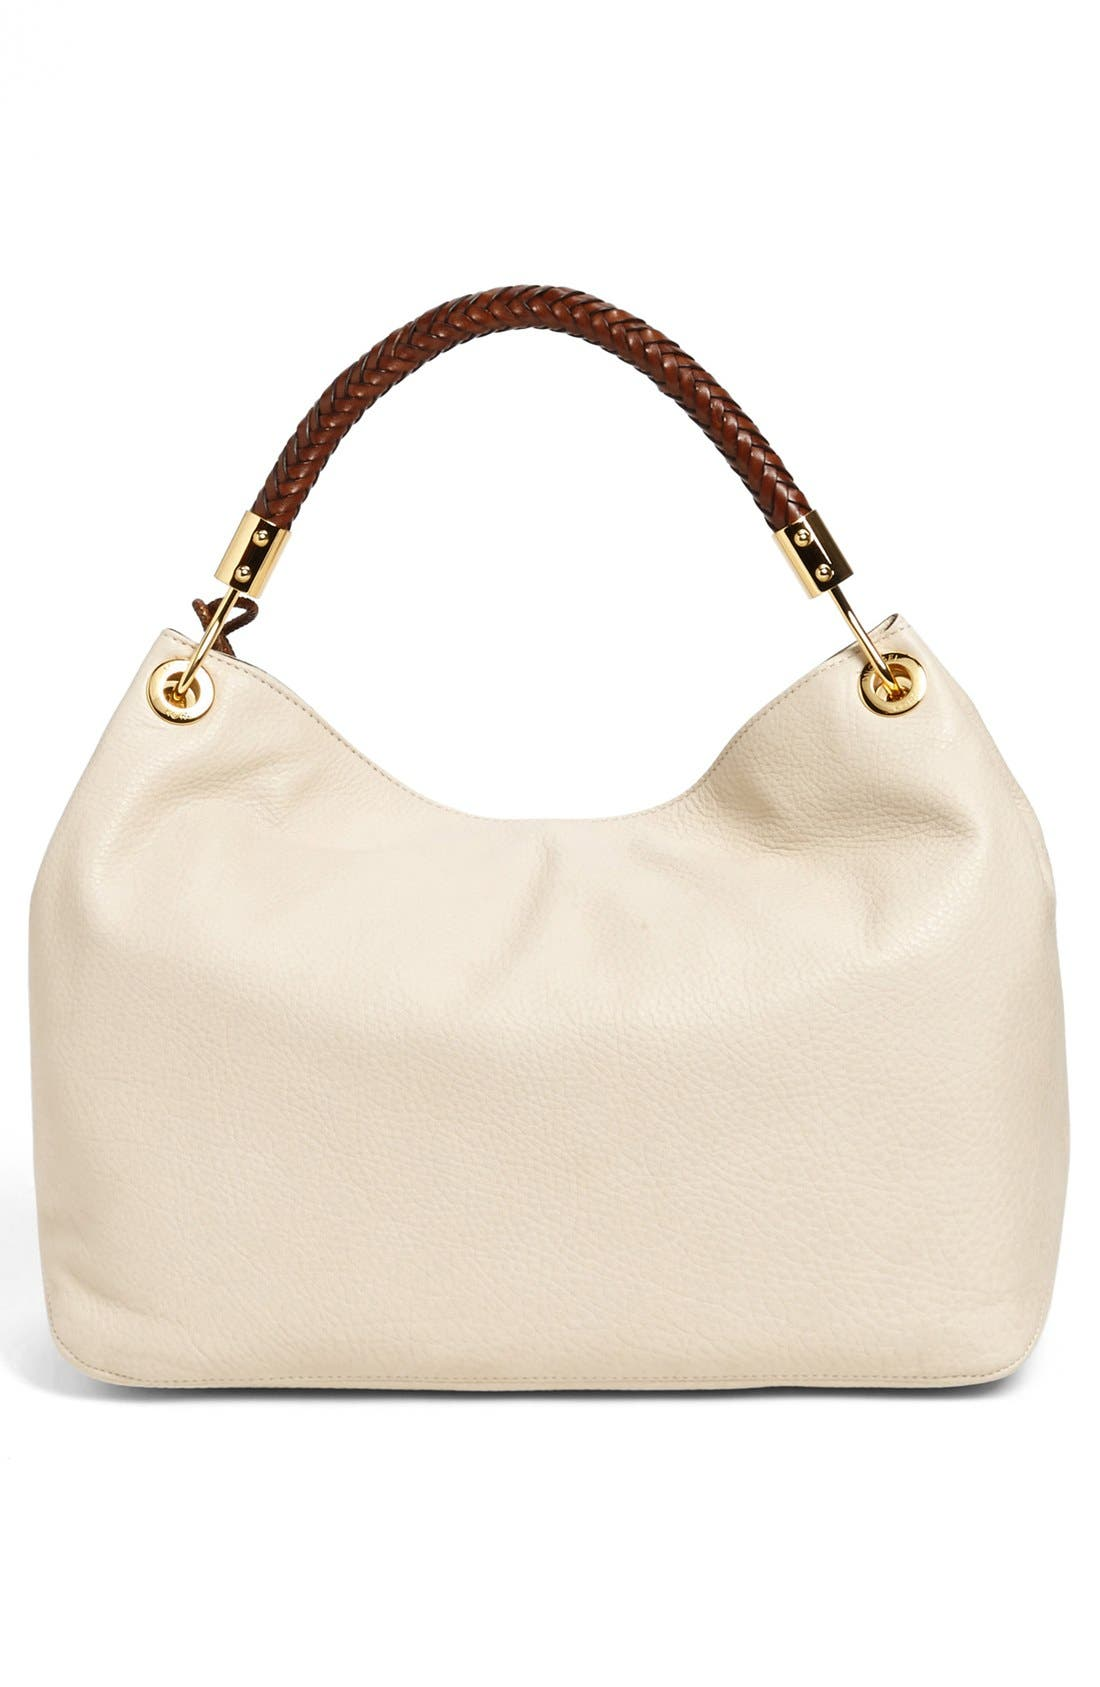 Alternate Image 3  - Michael Kors 'Large Skorpios' Leather Shoulder Bag